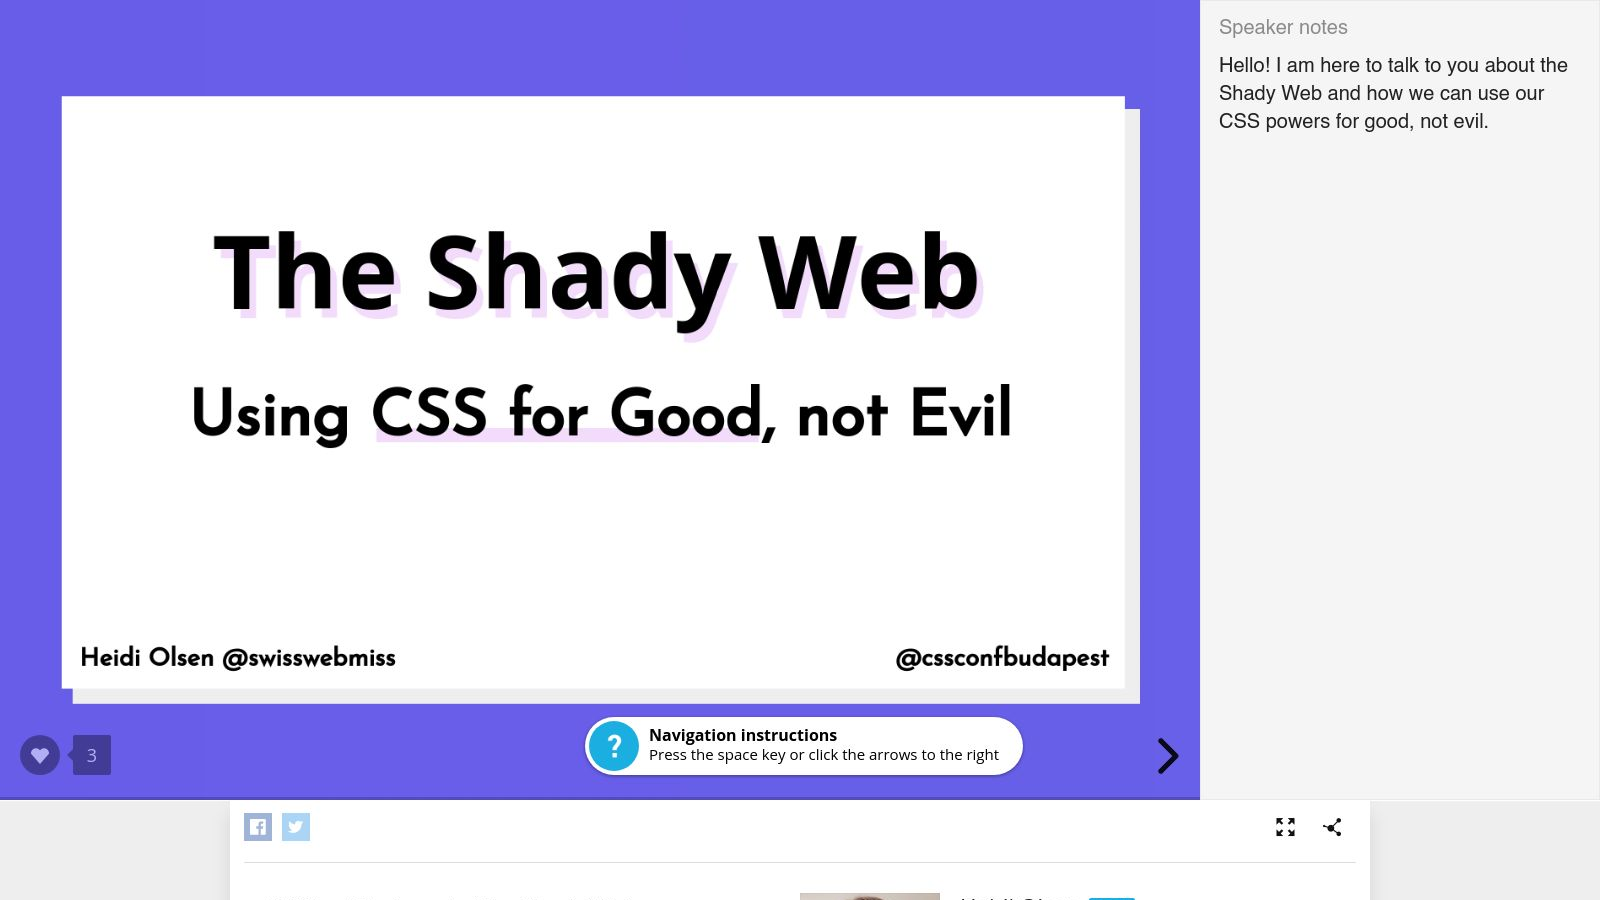 The Shady Web: Using CSS for Good, not Evil